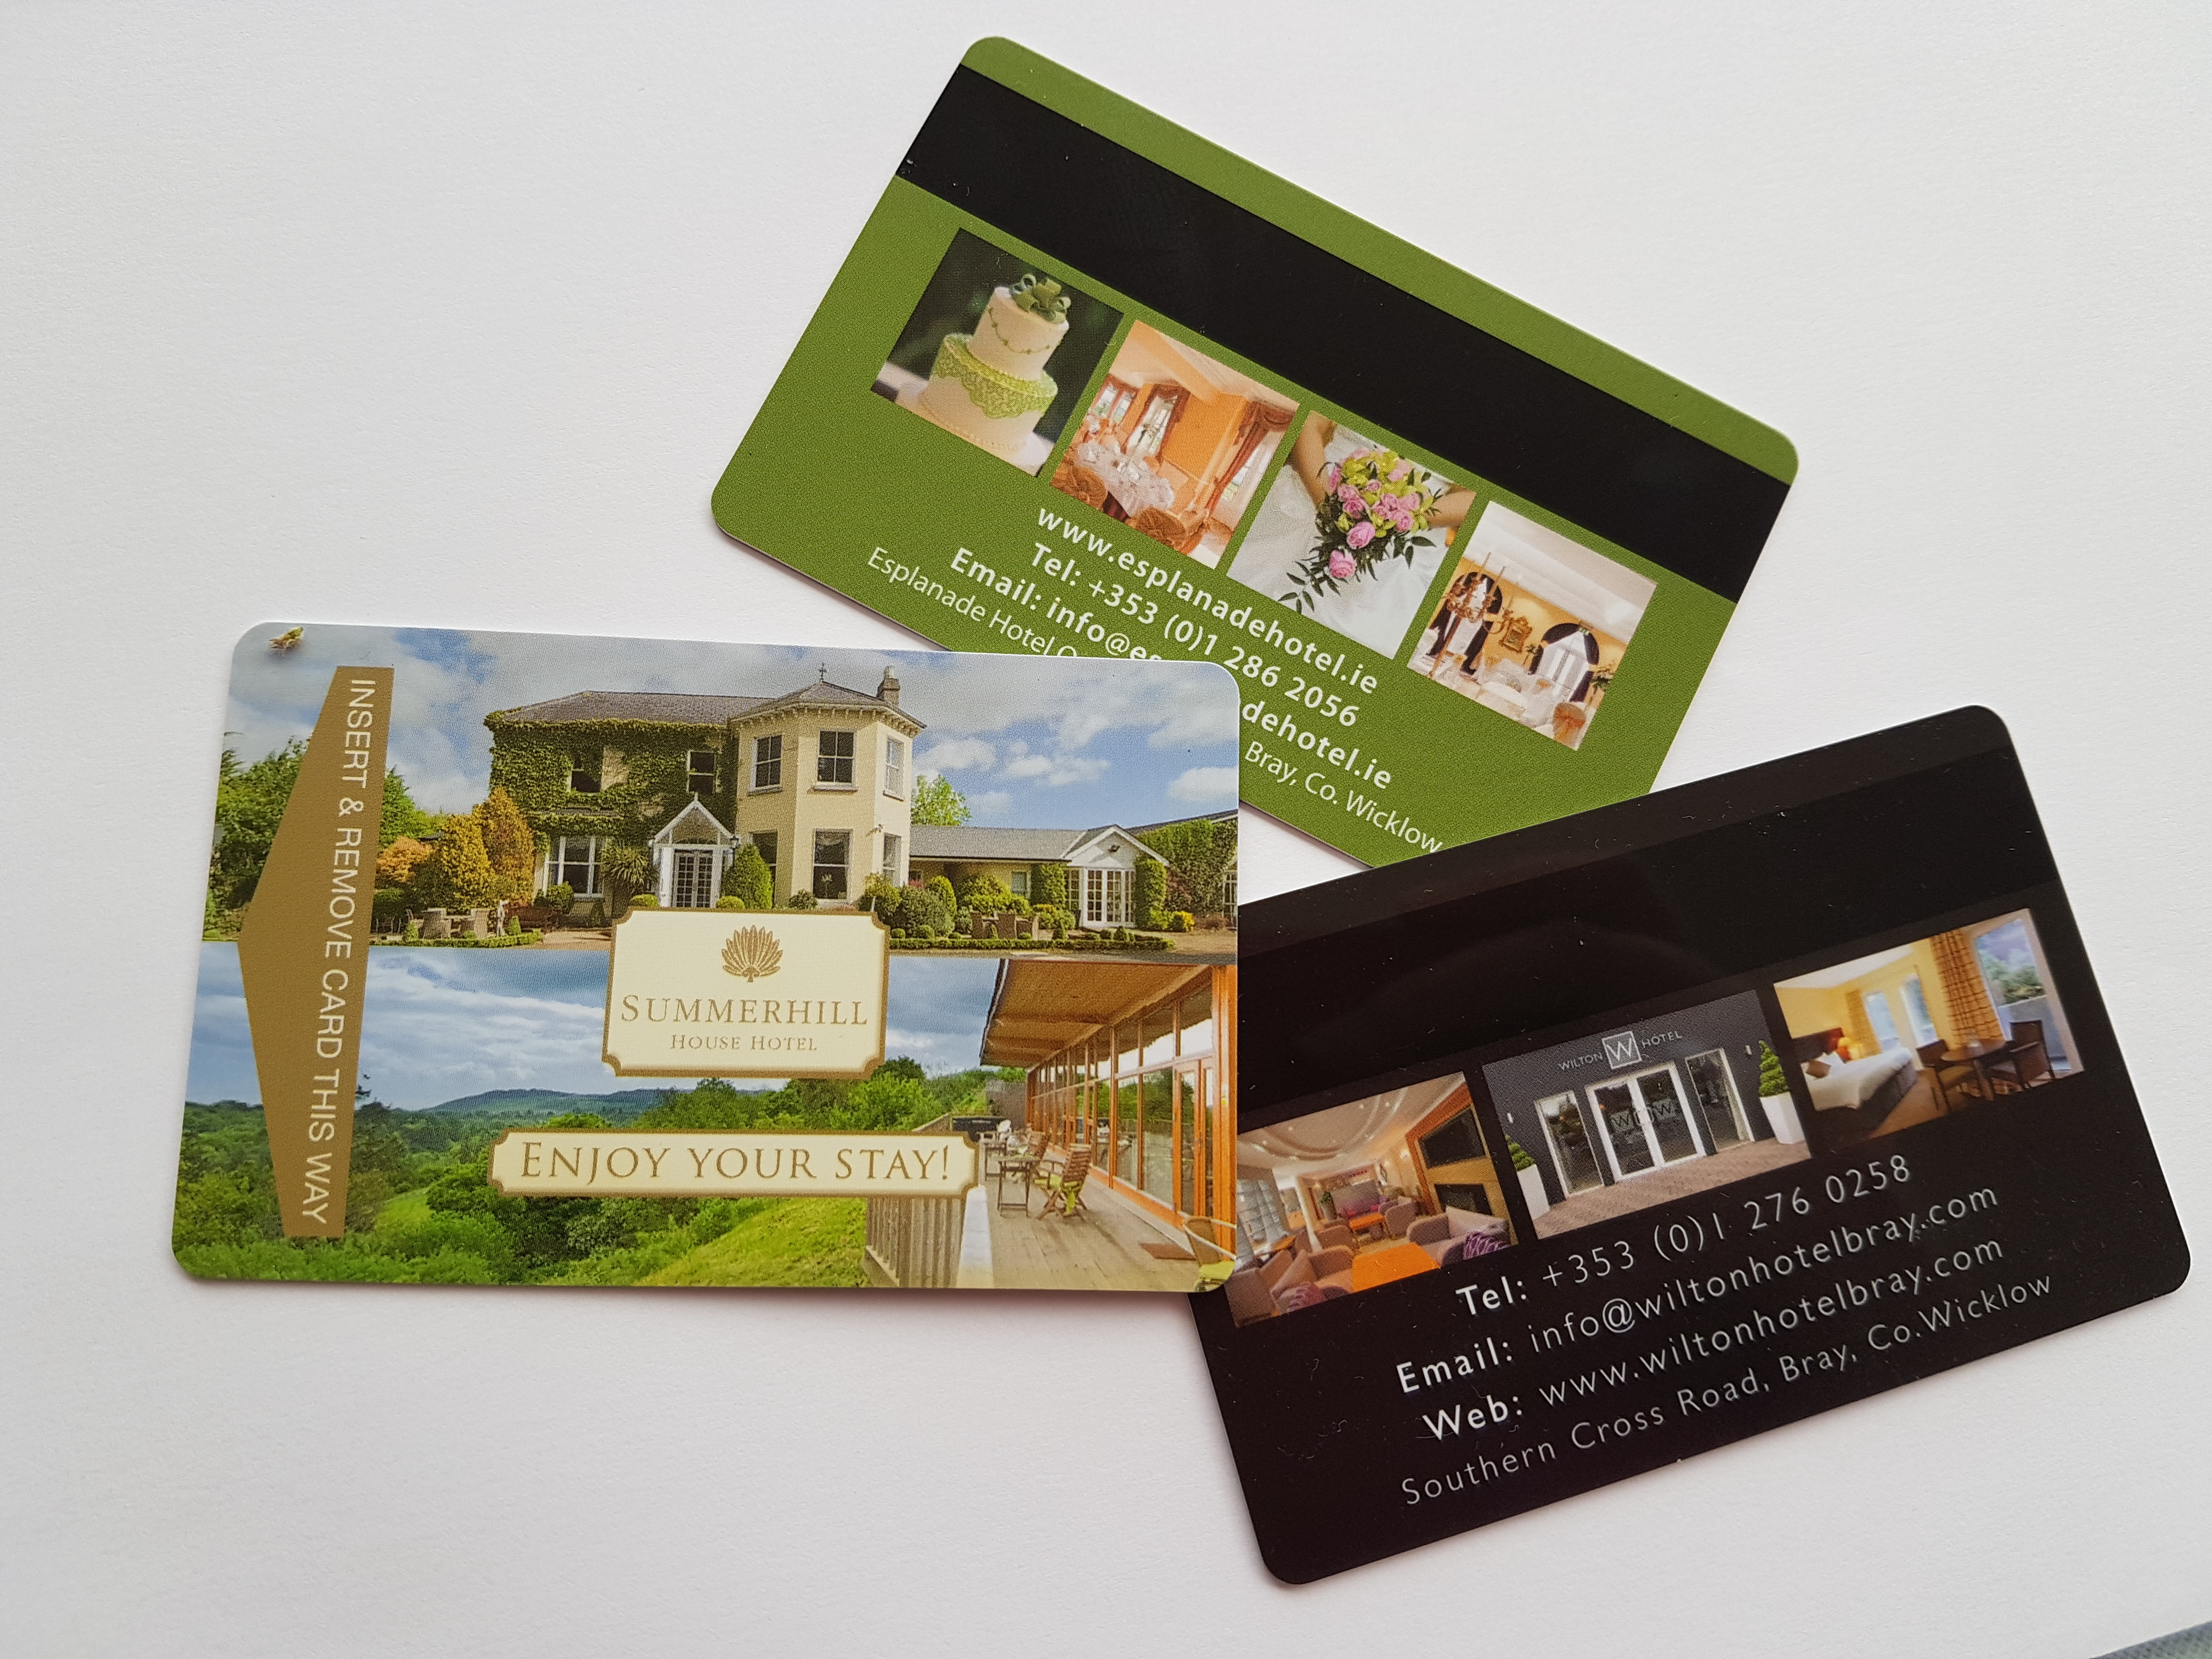 hotel room key cards printed by ross print greystones